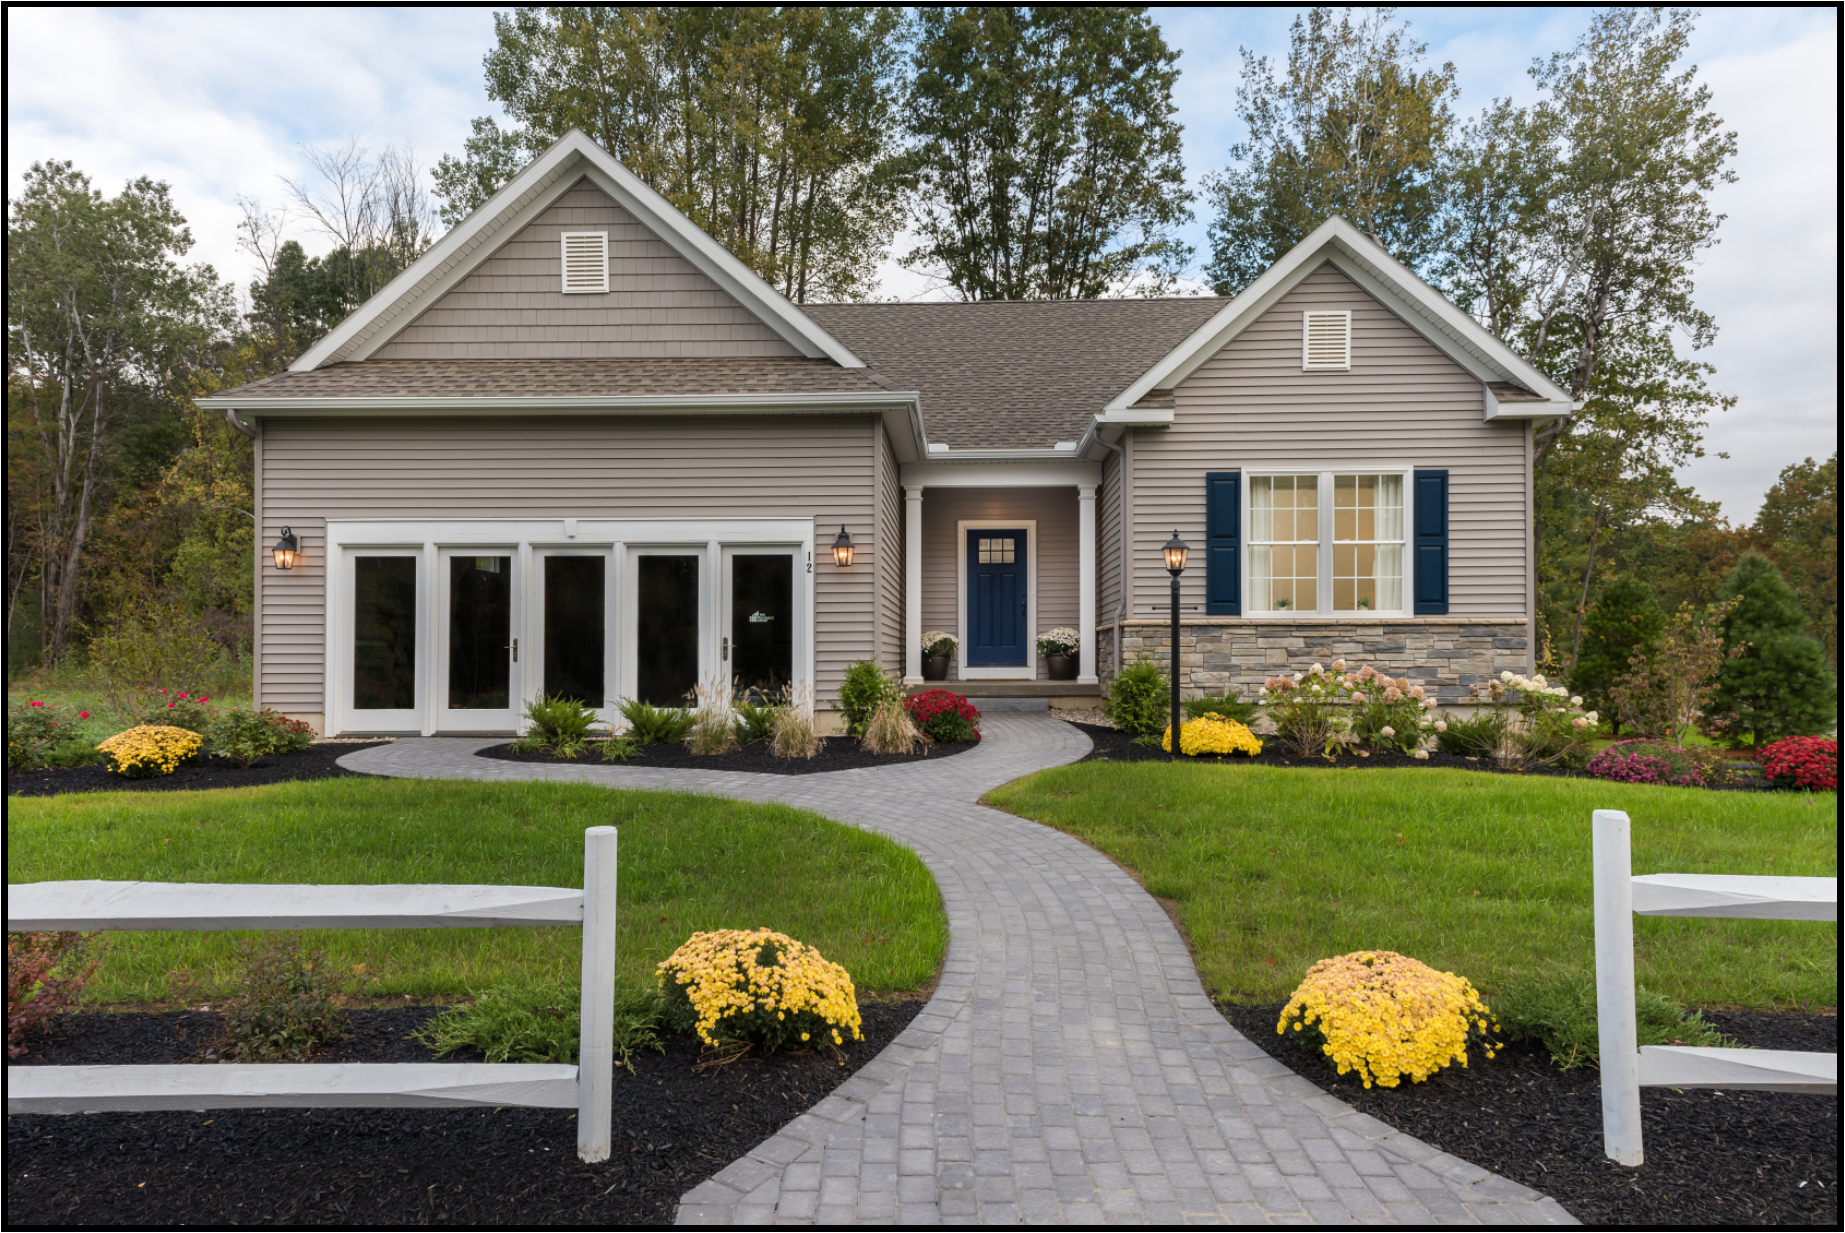 Exterior Photo of a Ranch Style Home - Gray with Stone